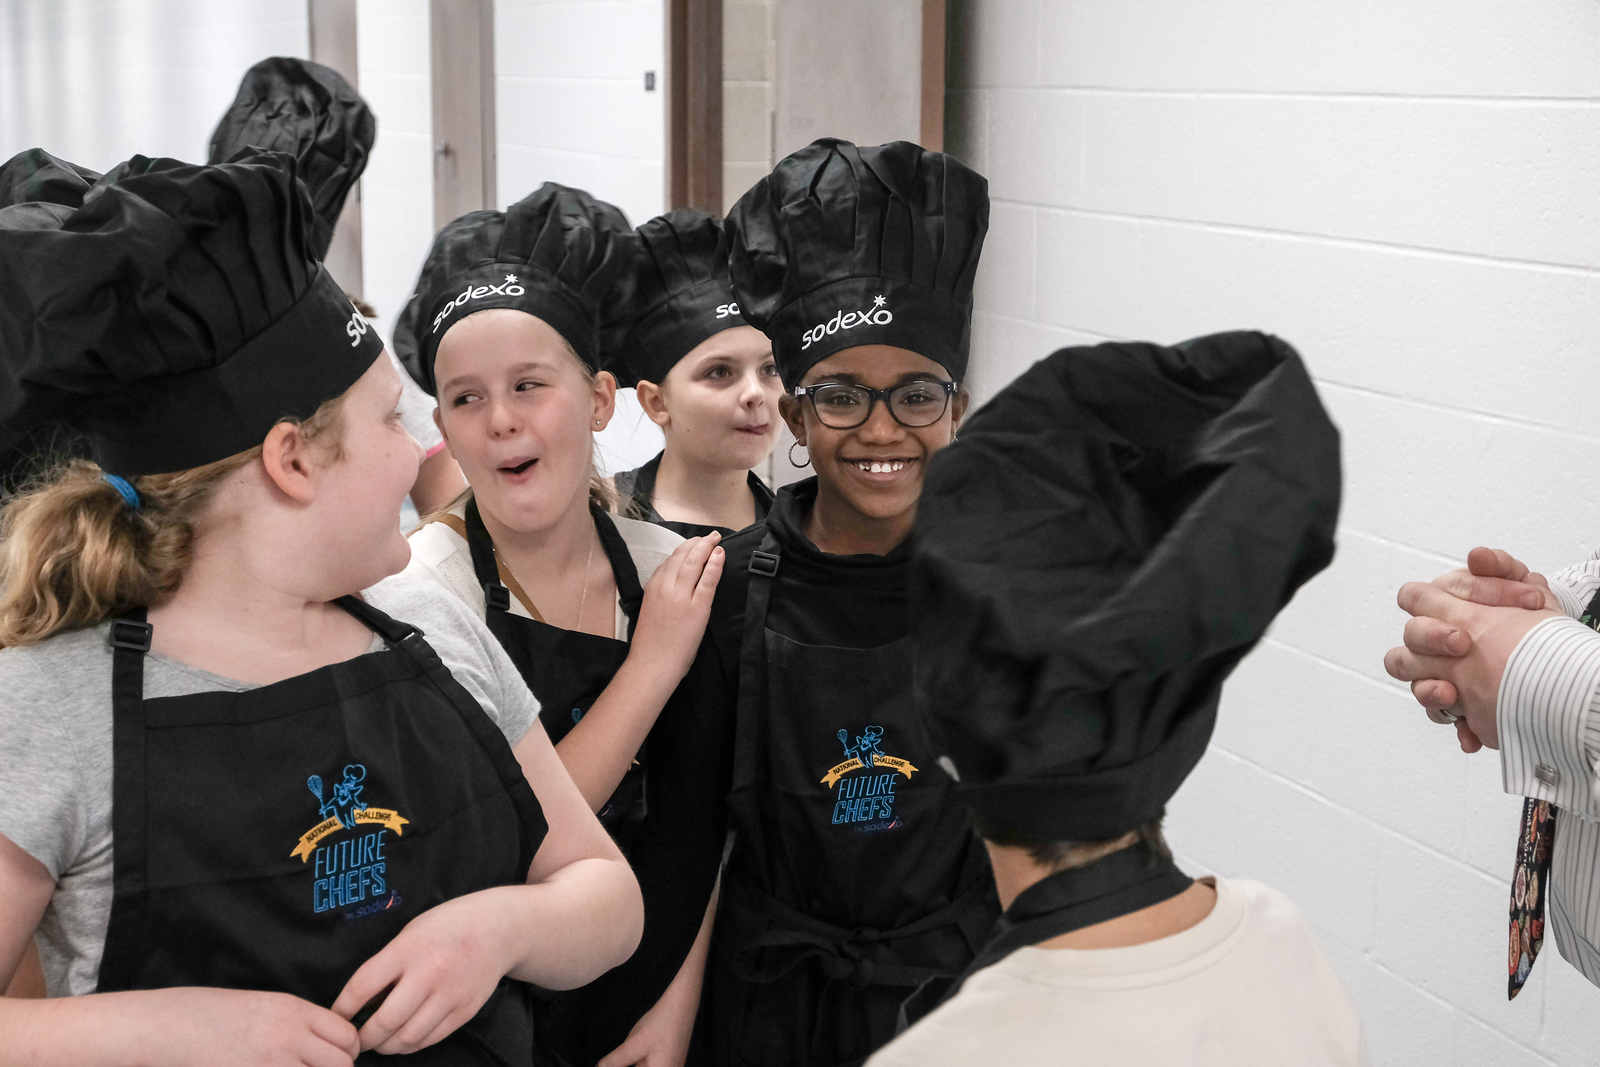 11 future chefs faced off at O.W. Best Middle School, but only one will walk away with the coveted white apron. Matt Thompson - For The Press & Guide